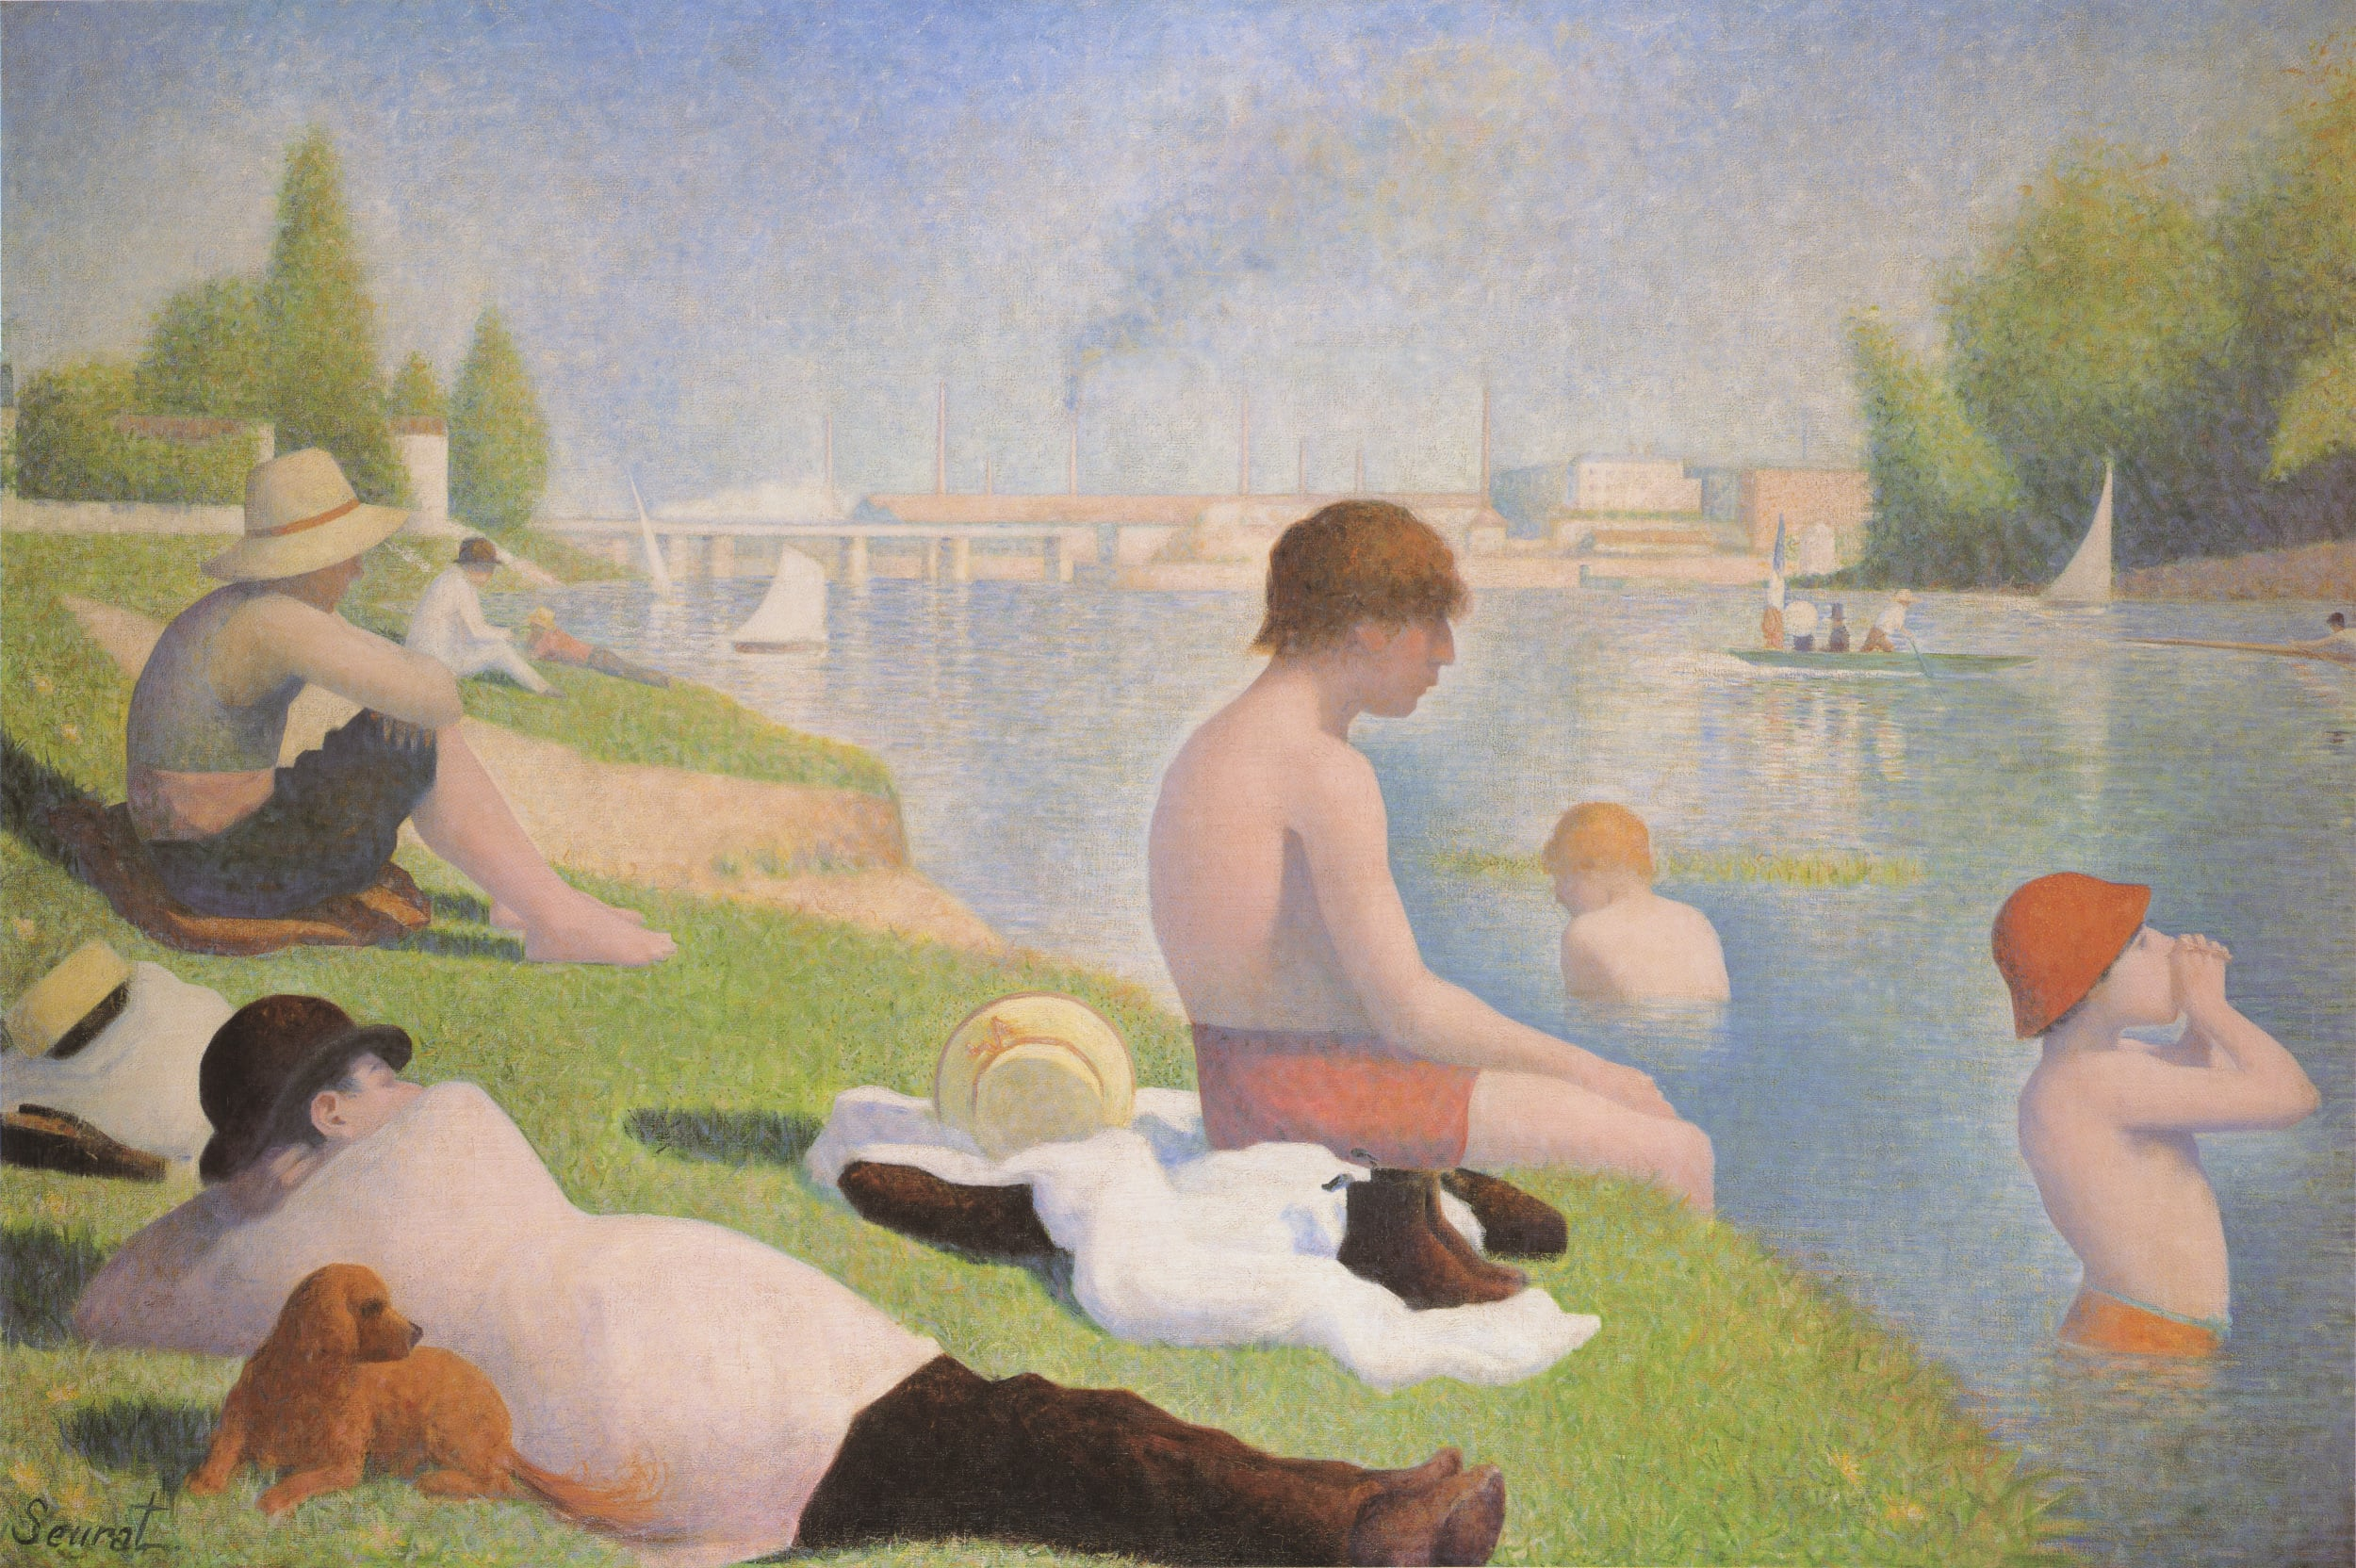 1. Georges Seurat, Bathers at Asnières, 1884 - National Gallery, London